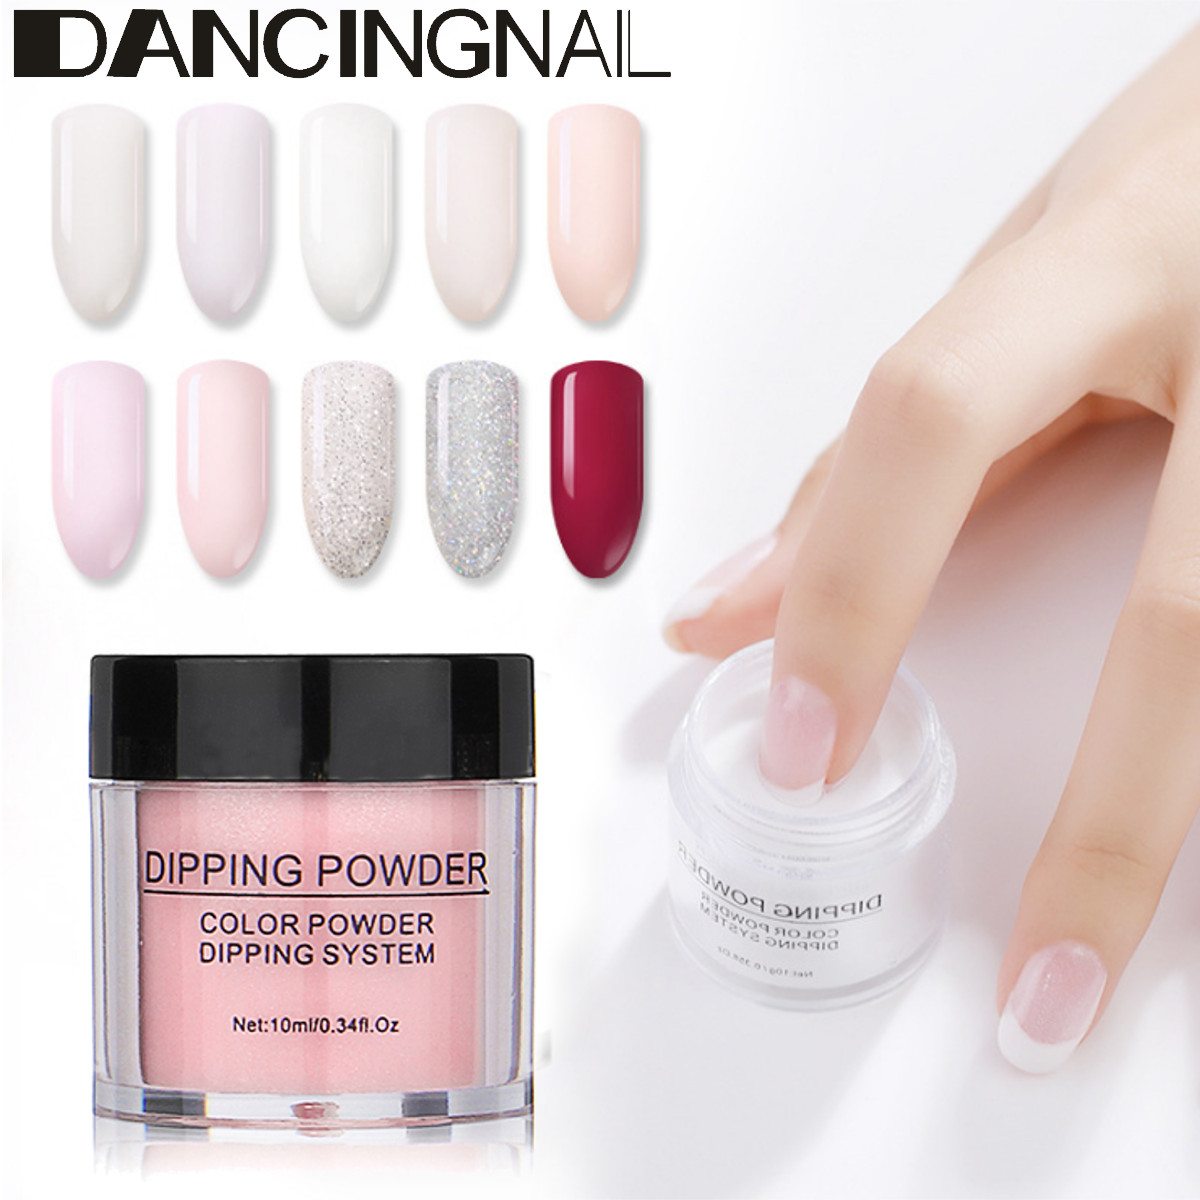 Details about DANCINGNAIL Nail Art Dipping Powder without Lamp Cure Dip  Powder Natural Dry SPZ